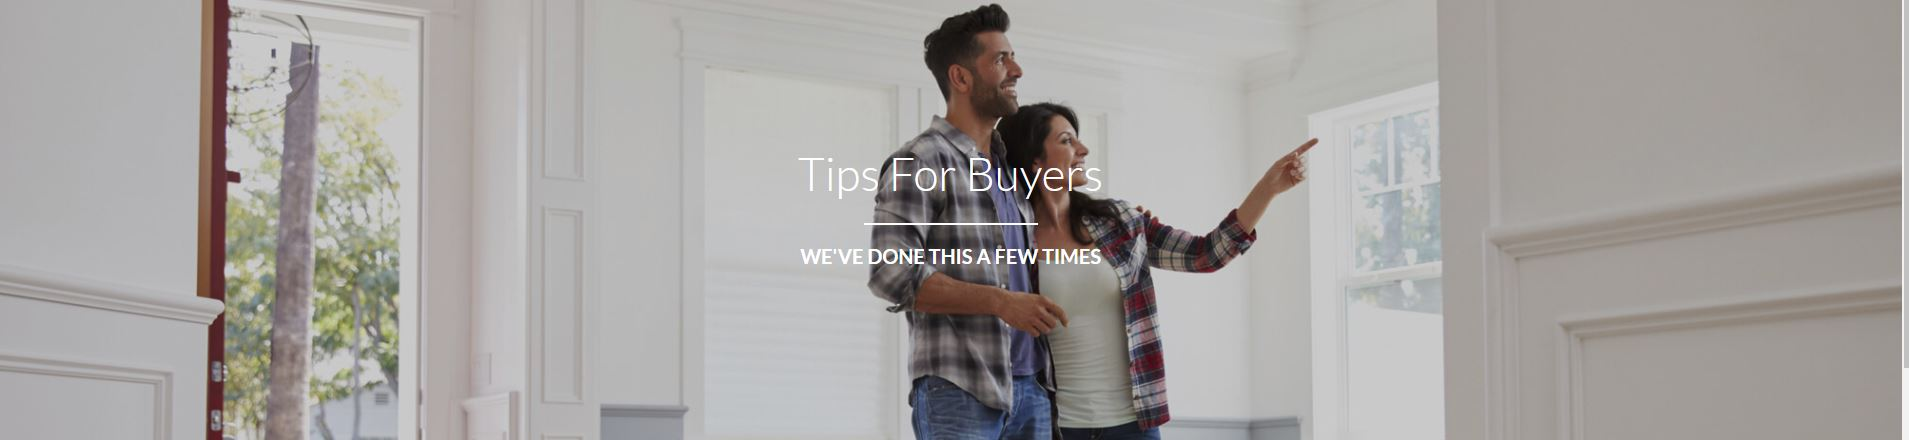 Tipsforbuyers